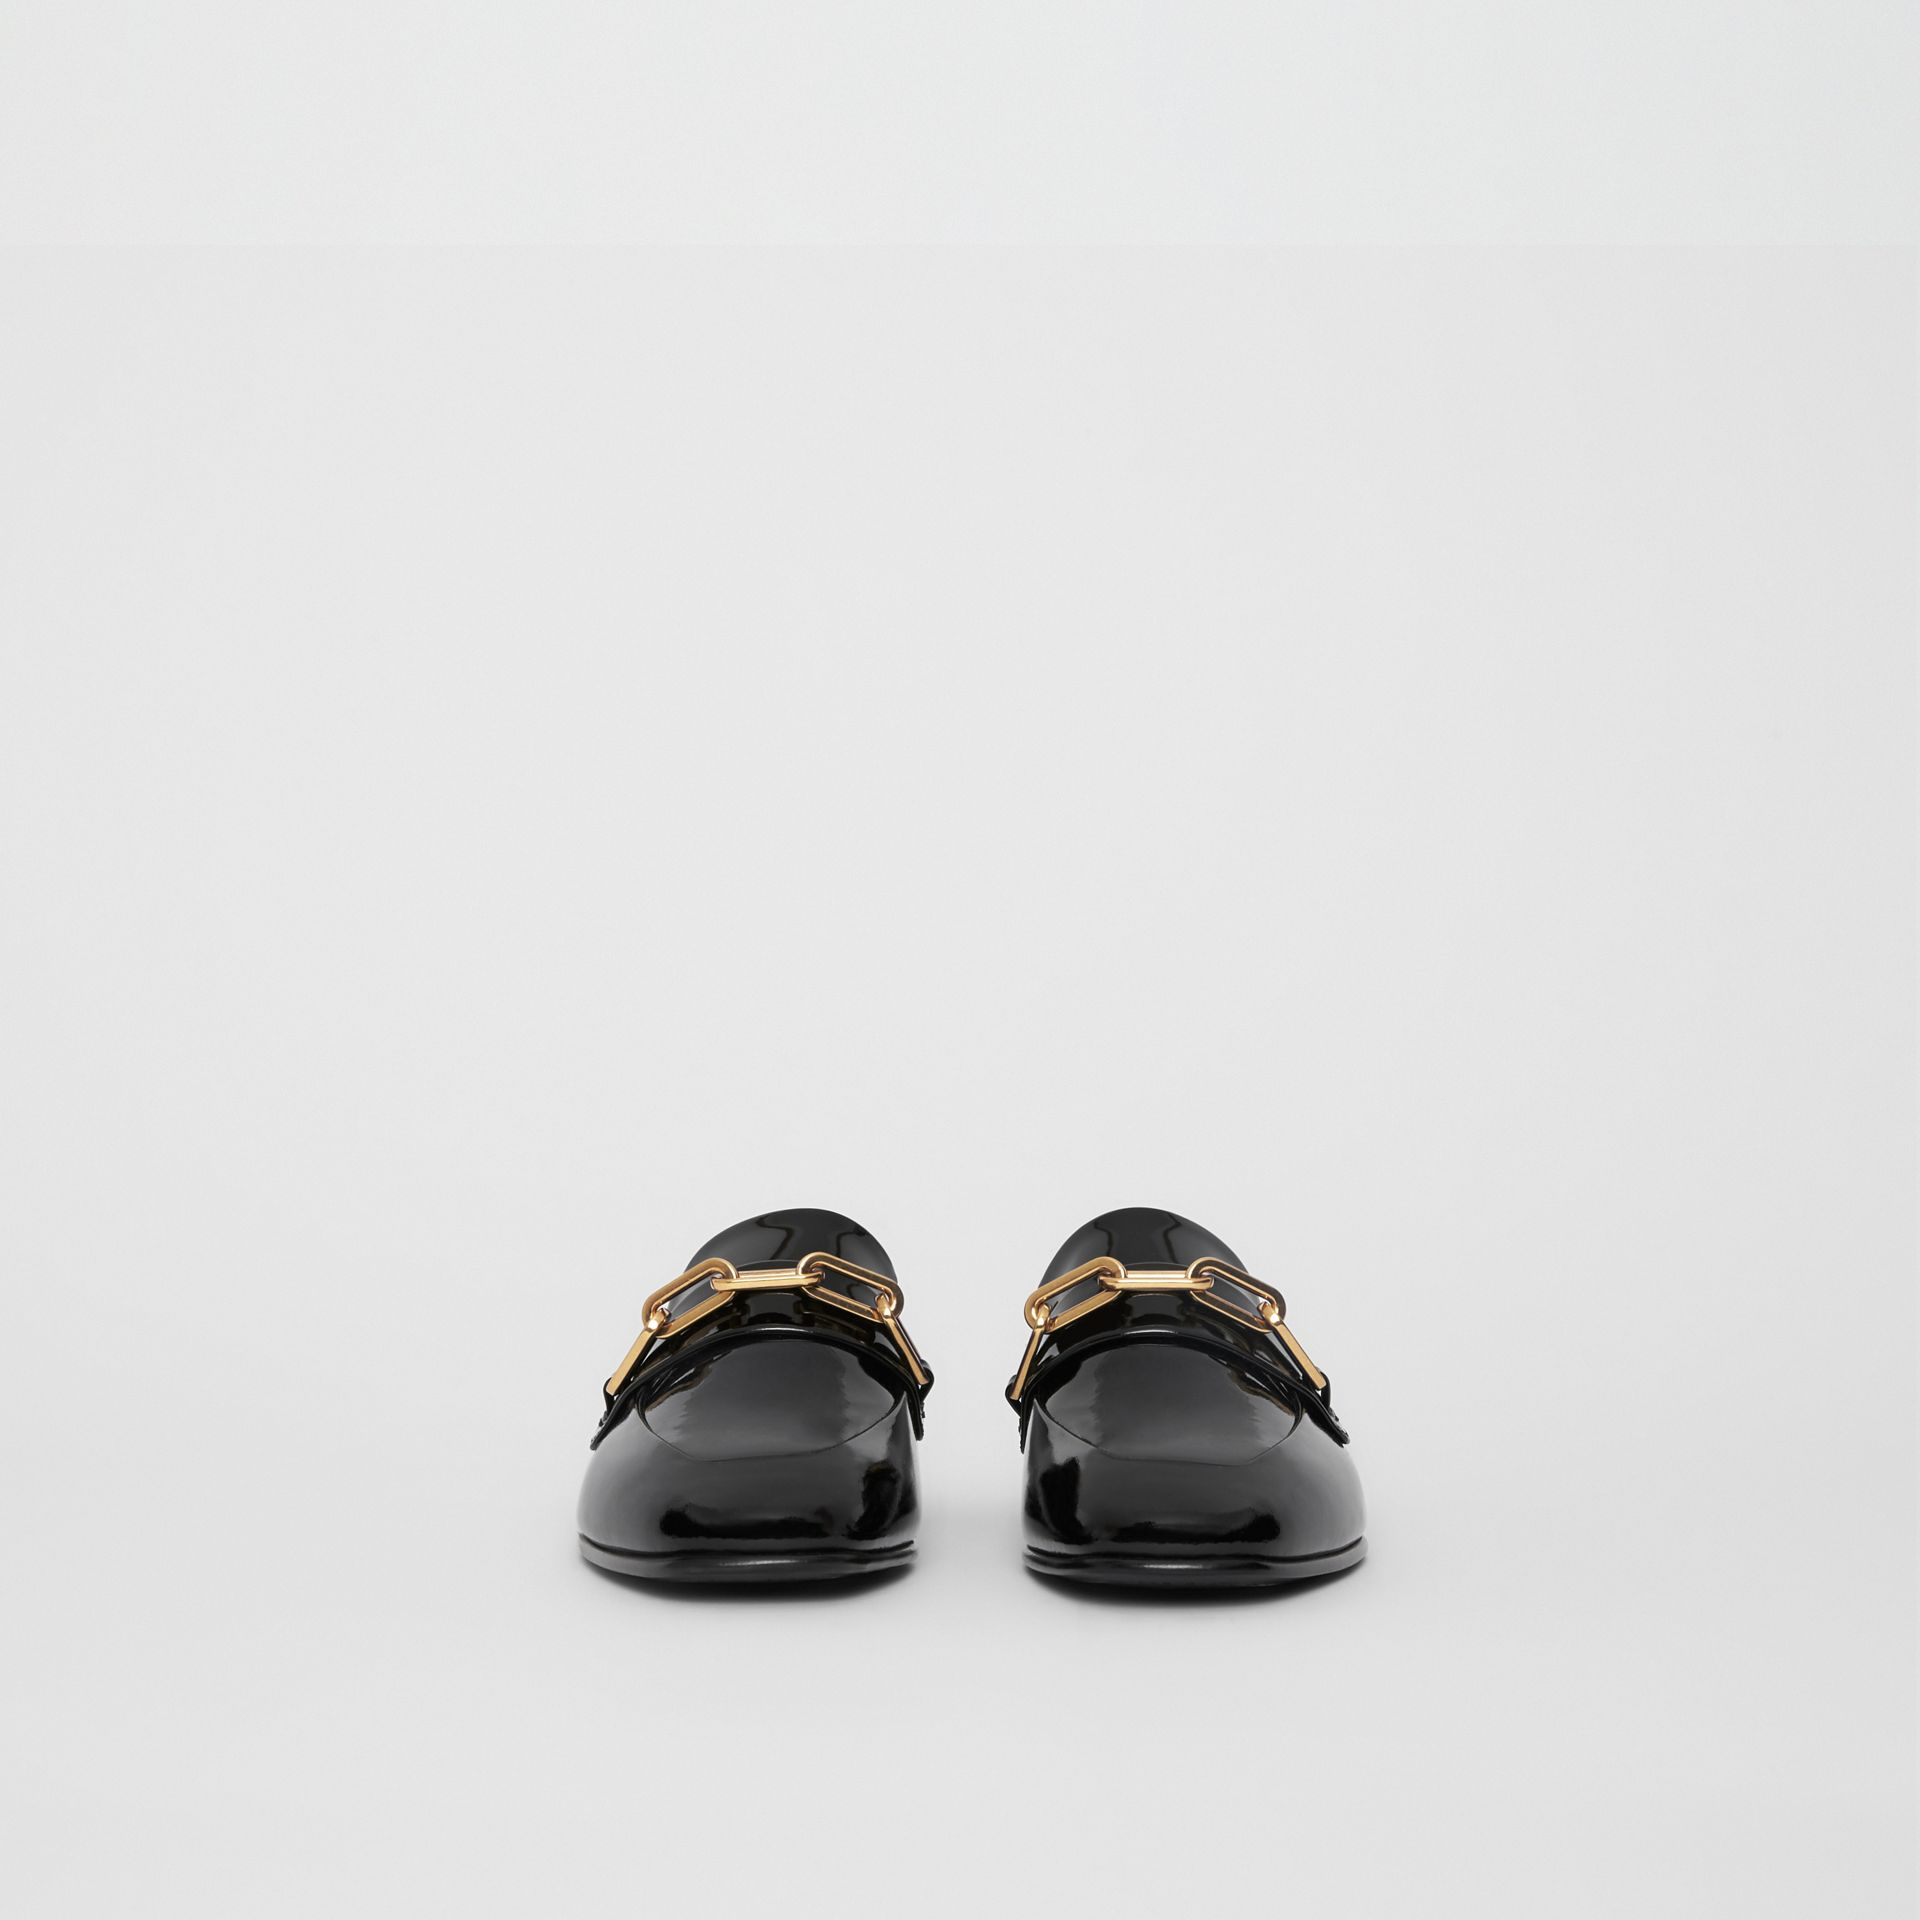 Link Detail Patent Leather Loafers in Black - Women | Burberry - gallery image 3